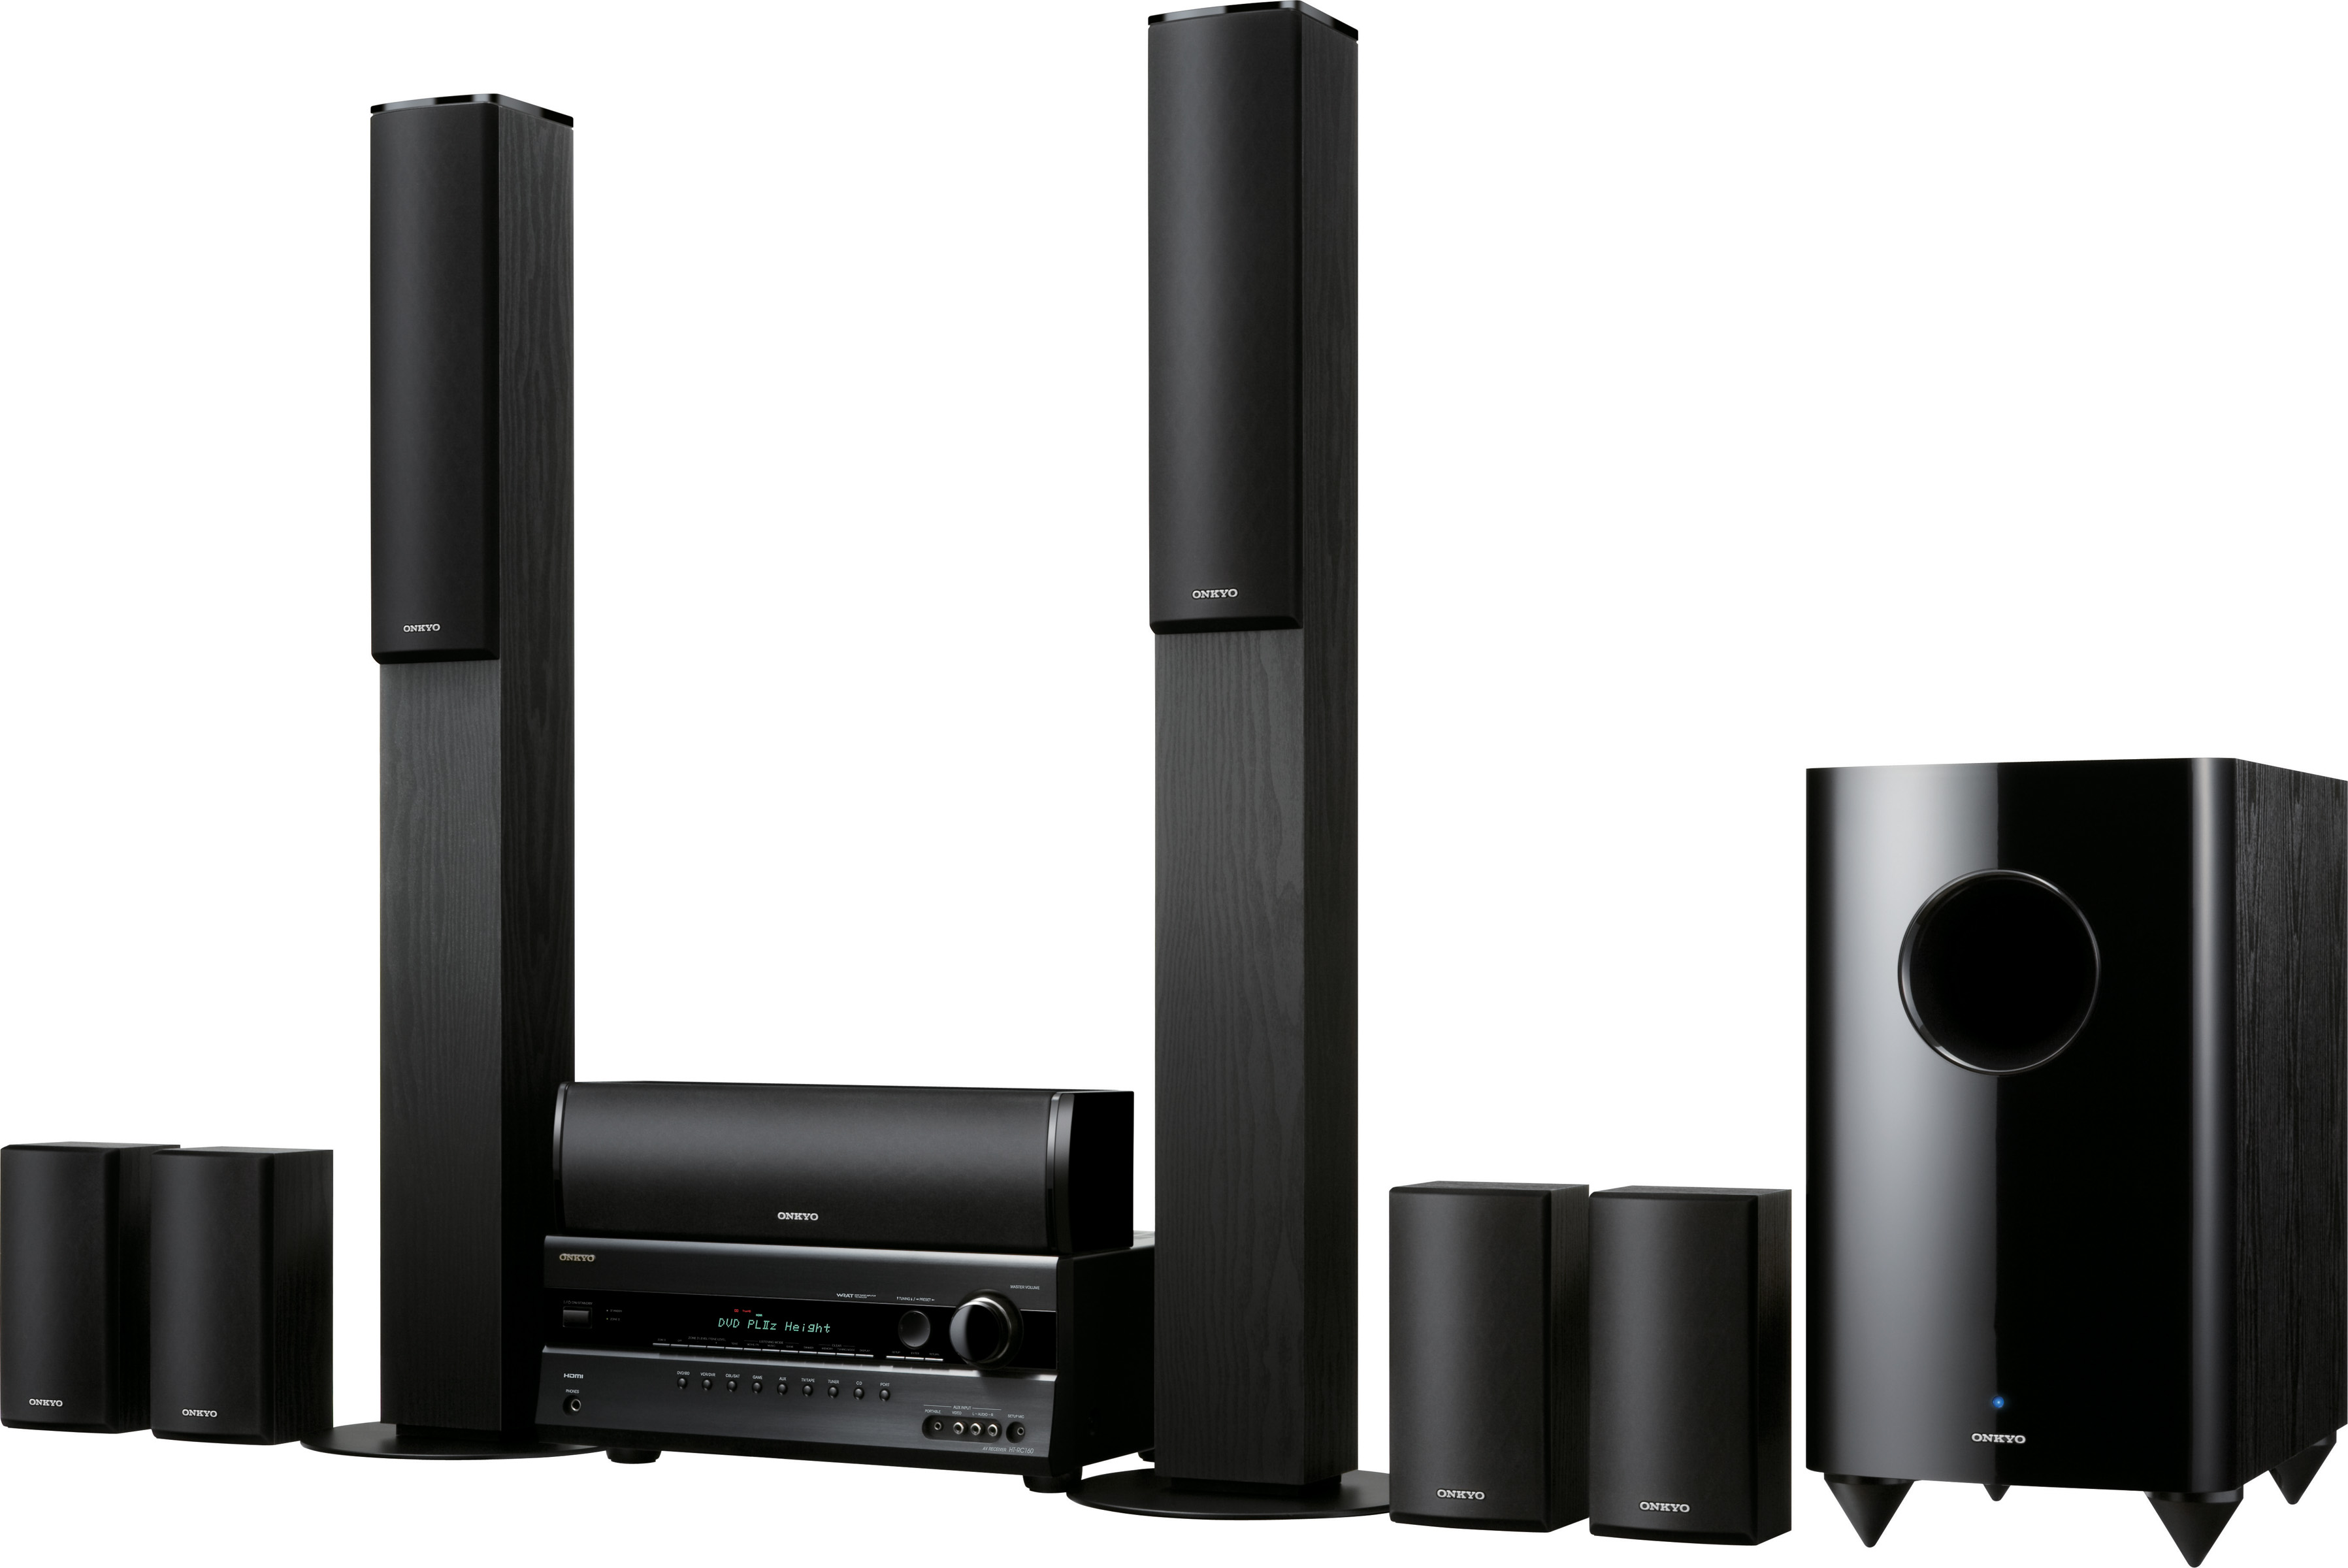 Onkyo HT-S7200 and HT-S6200 7.1-channel systems with ProLogic IIz support